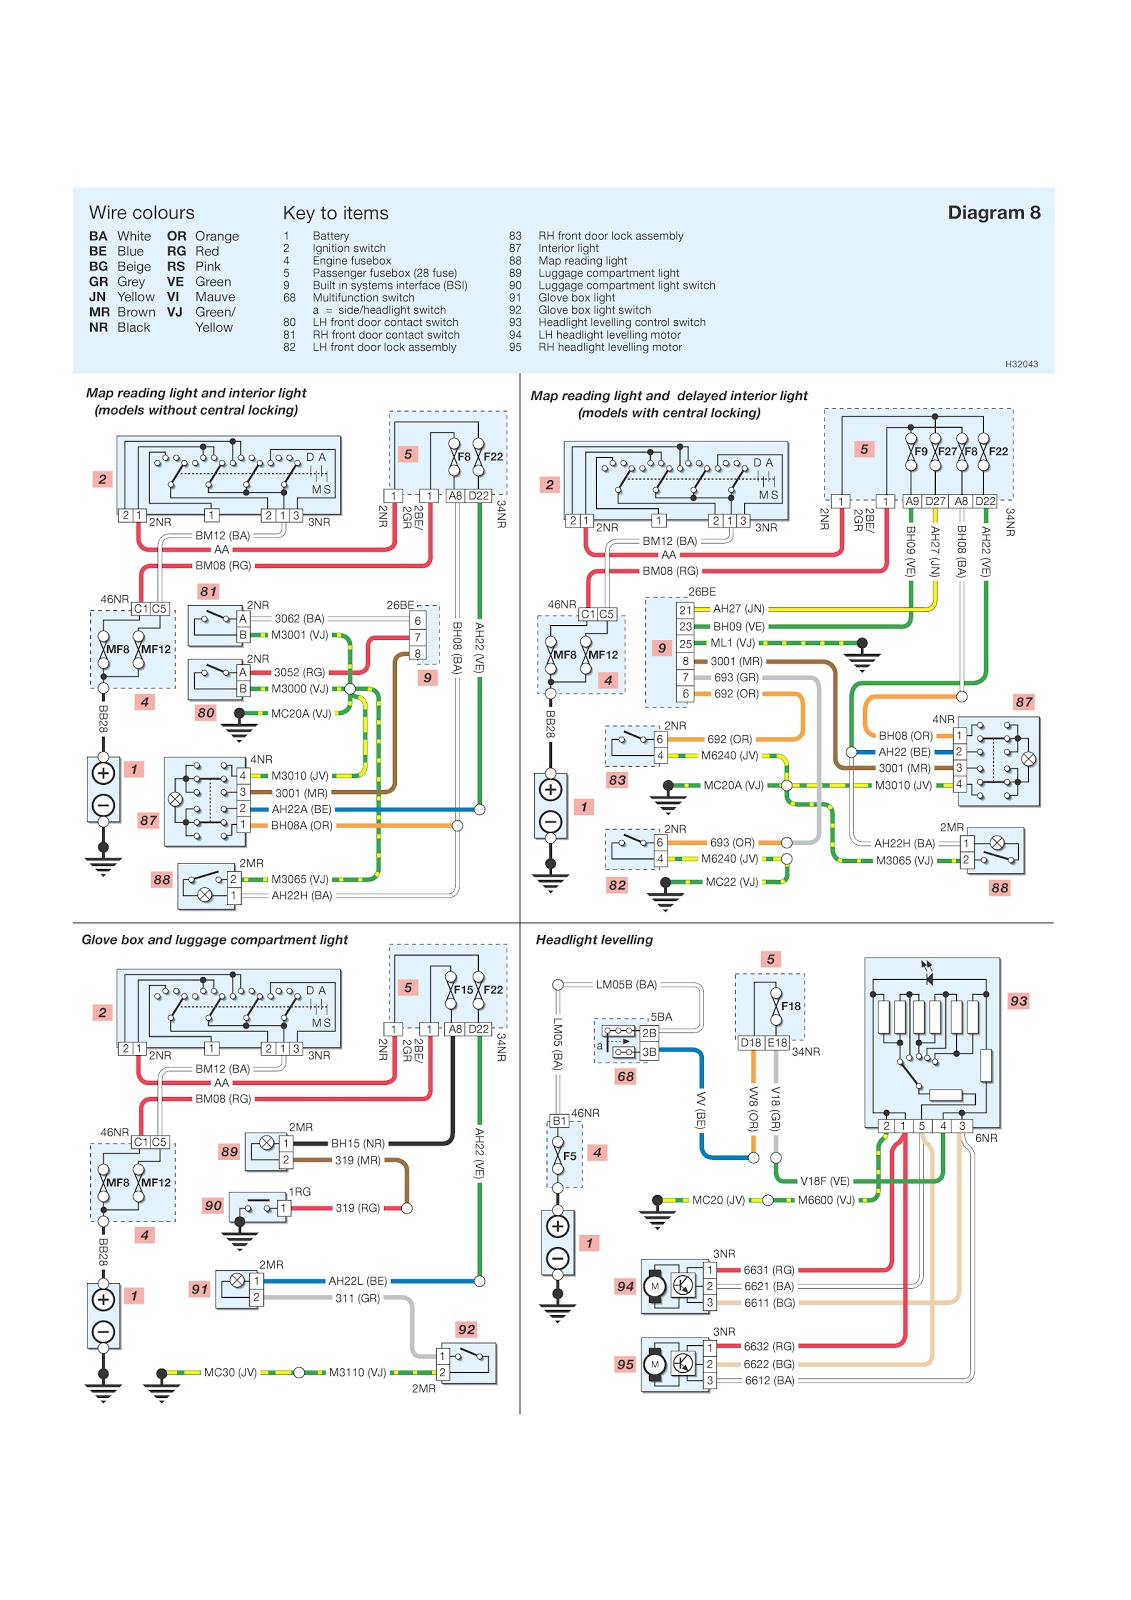 Peugeot 206 Fuel Injection System Wiring Diagrams Schematic Wiring ...